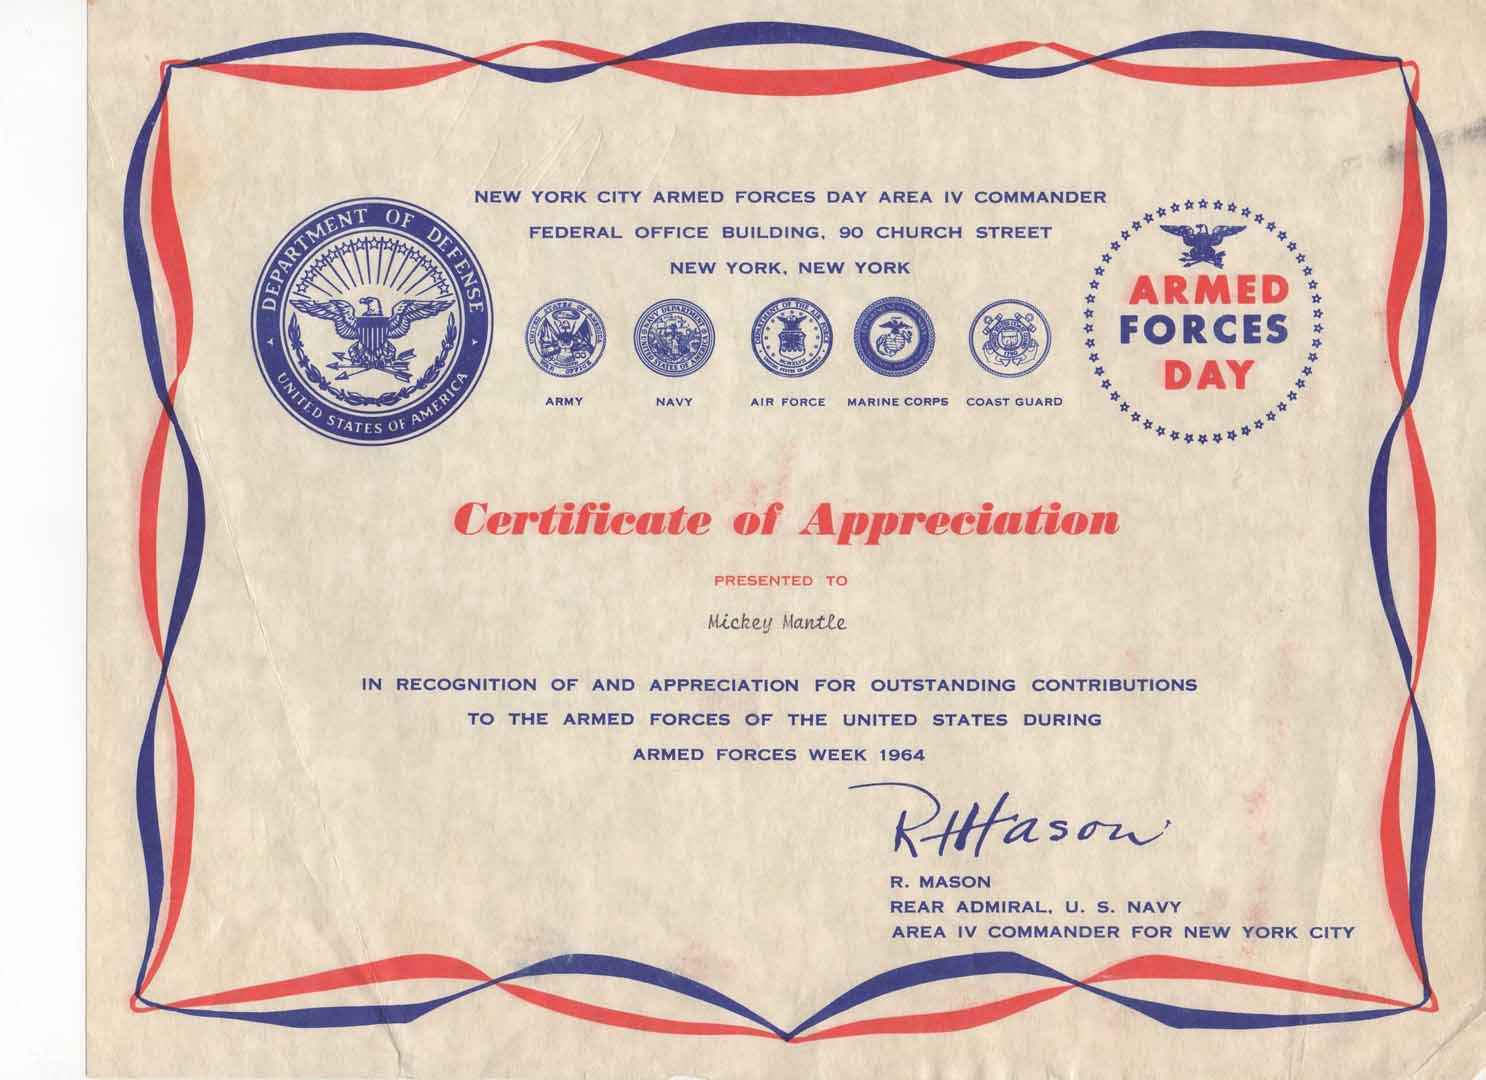 1964 armed forces day